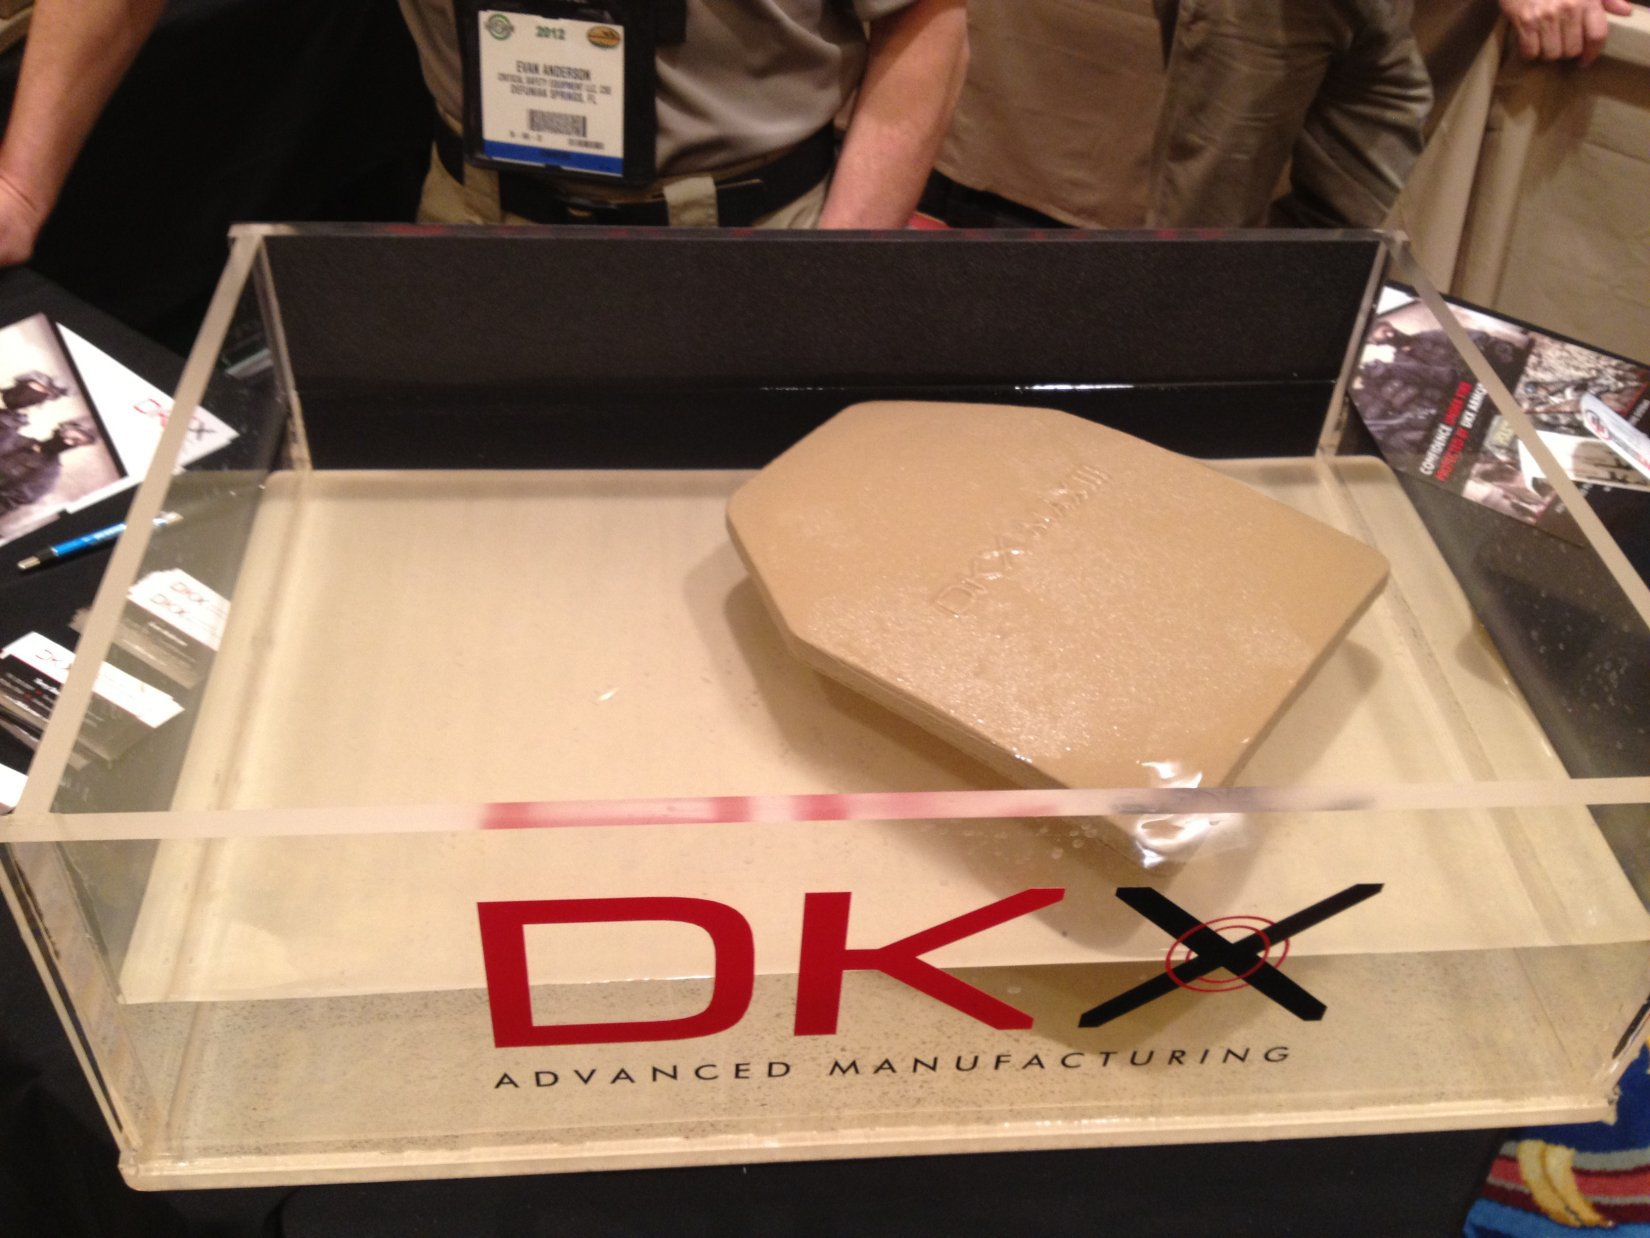 """DKX MAX III and Developmental MAX IV Lightweight, Multi-Hit/Drop-Resistant Dyneema """"Floaty Armor"""" (Floating Armor) Maritime Hard Armor Plates at SHOT Show 2012 (Video!)"""